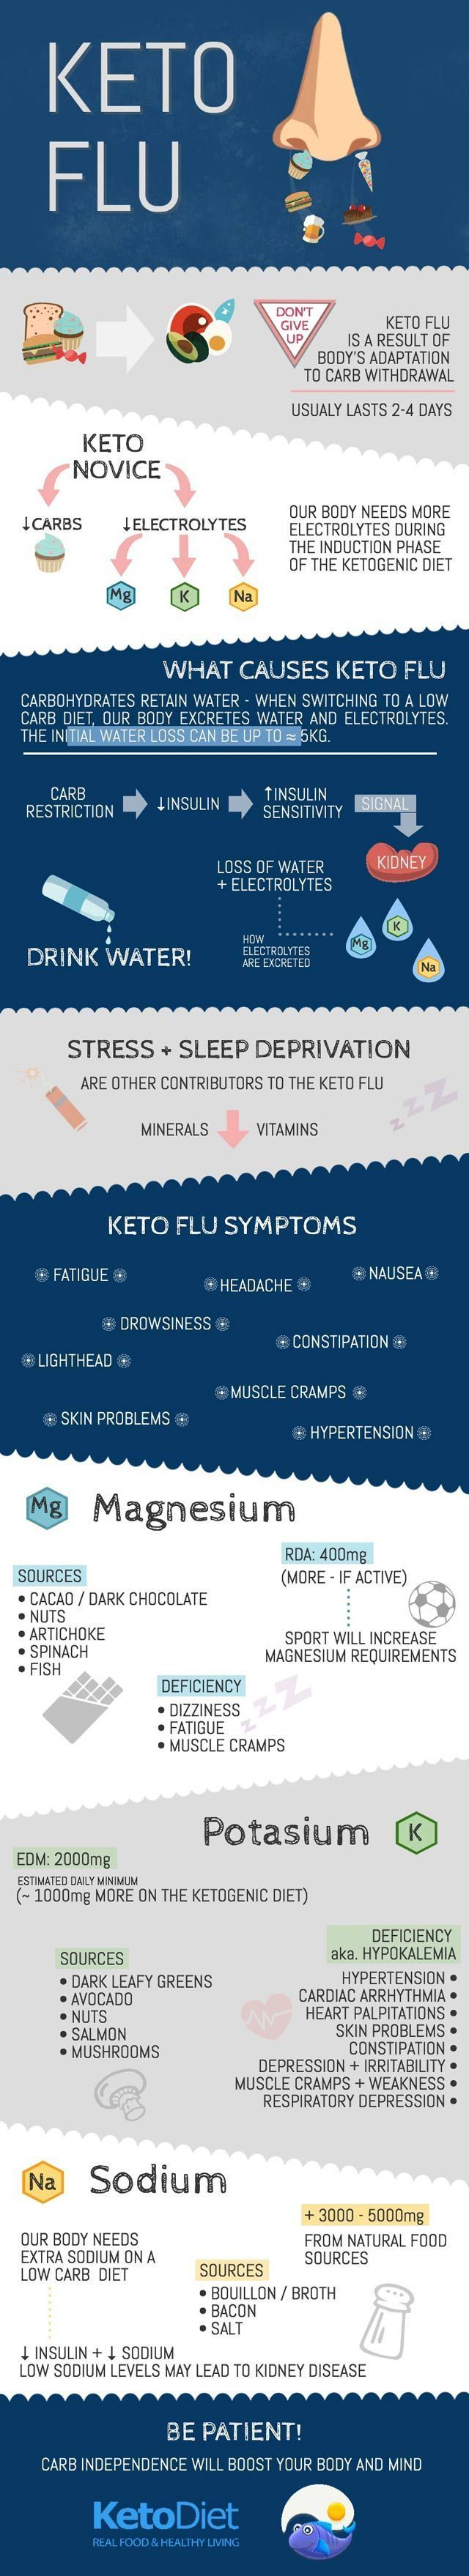 Side Effects Of The Ketosis Diet